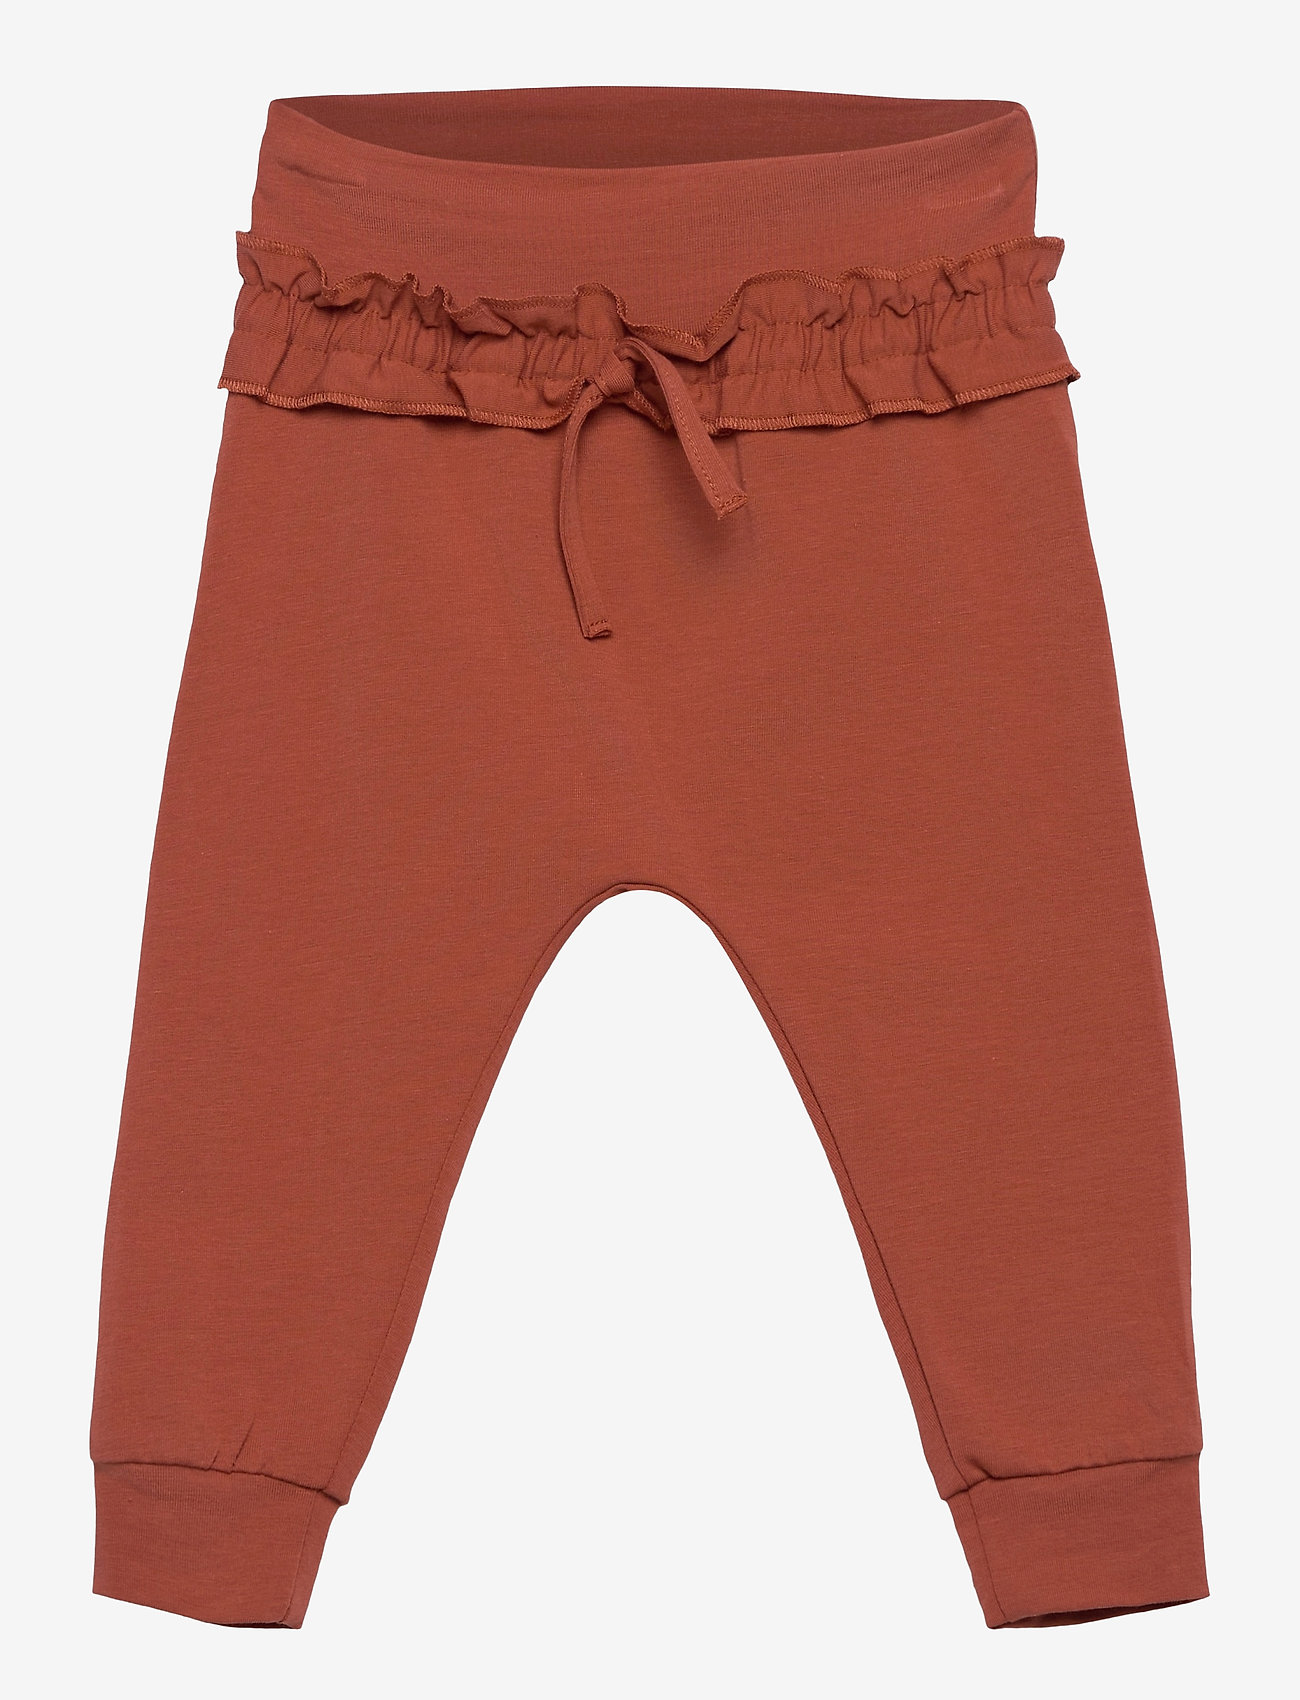 Müsli by Green Cotton - Cozy me string pants - trousers - russet - 0